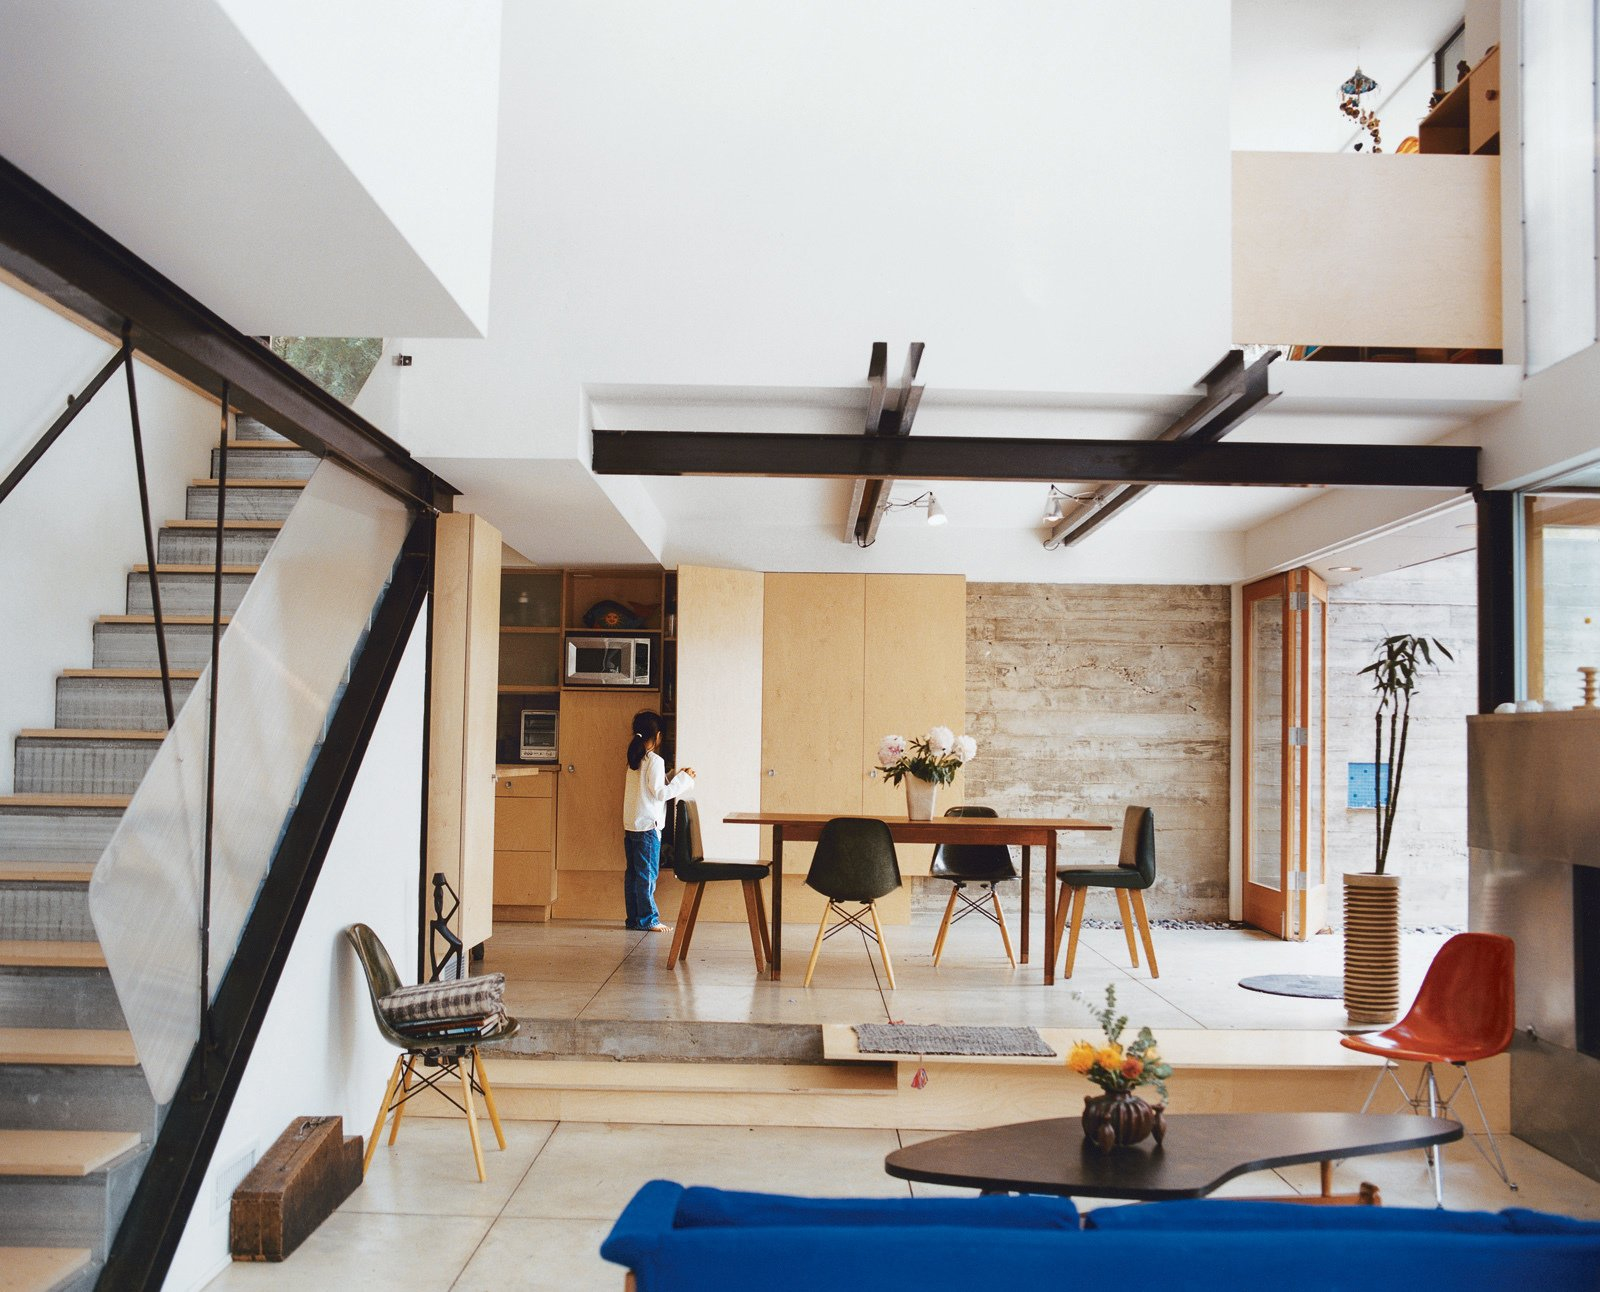 """The steel framing used for the house was left partially exposed. Other pragmatic touches with longevity and economy in mind are evident throughout, such as the screwed-down birch plywood stair treads that can simply be flipped over when worn out. Most seating below by Charles and Ray Eames. The coffee table by Paul Laszlo is, says Fung, """"probably the nicest thing we own."""" Tagged: Dining Room, Chair, and Table.  Photo 9 of 20 in 20 Modern Living Rooms from How This Couple Broke The Rules in a LA Suburb"""